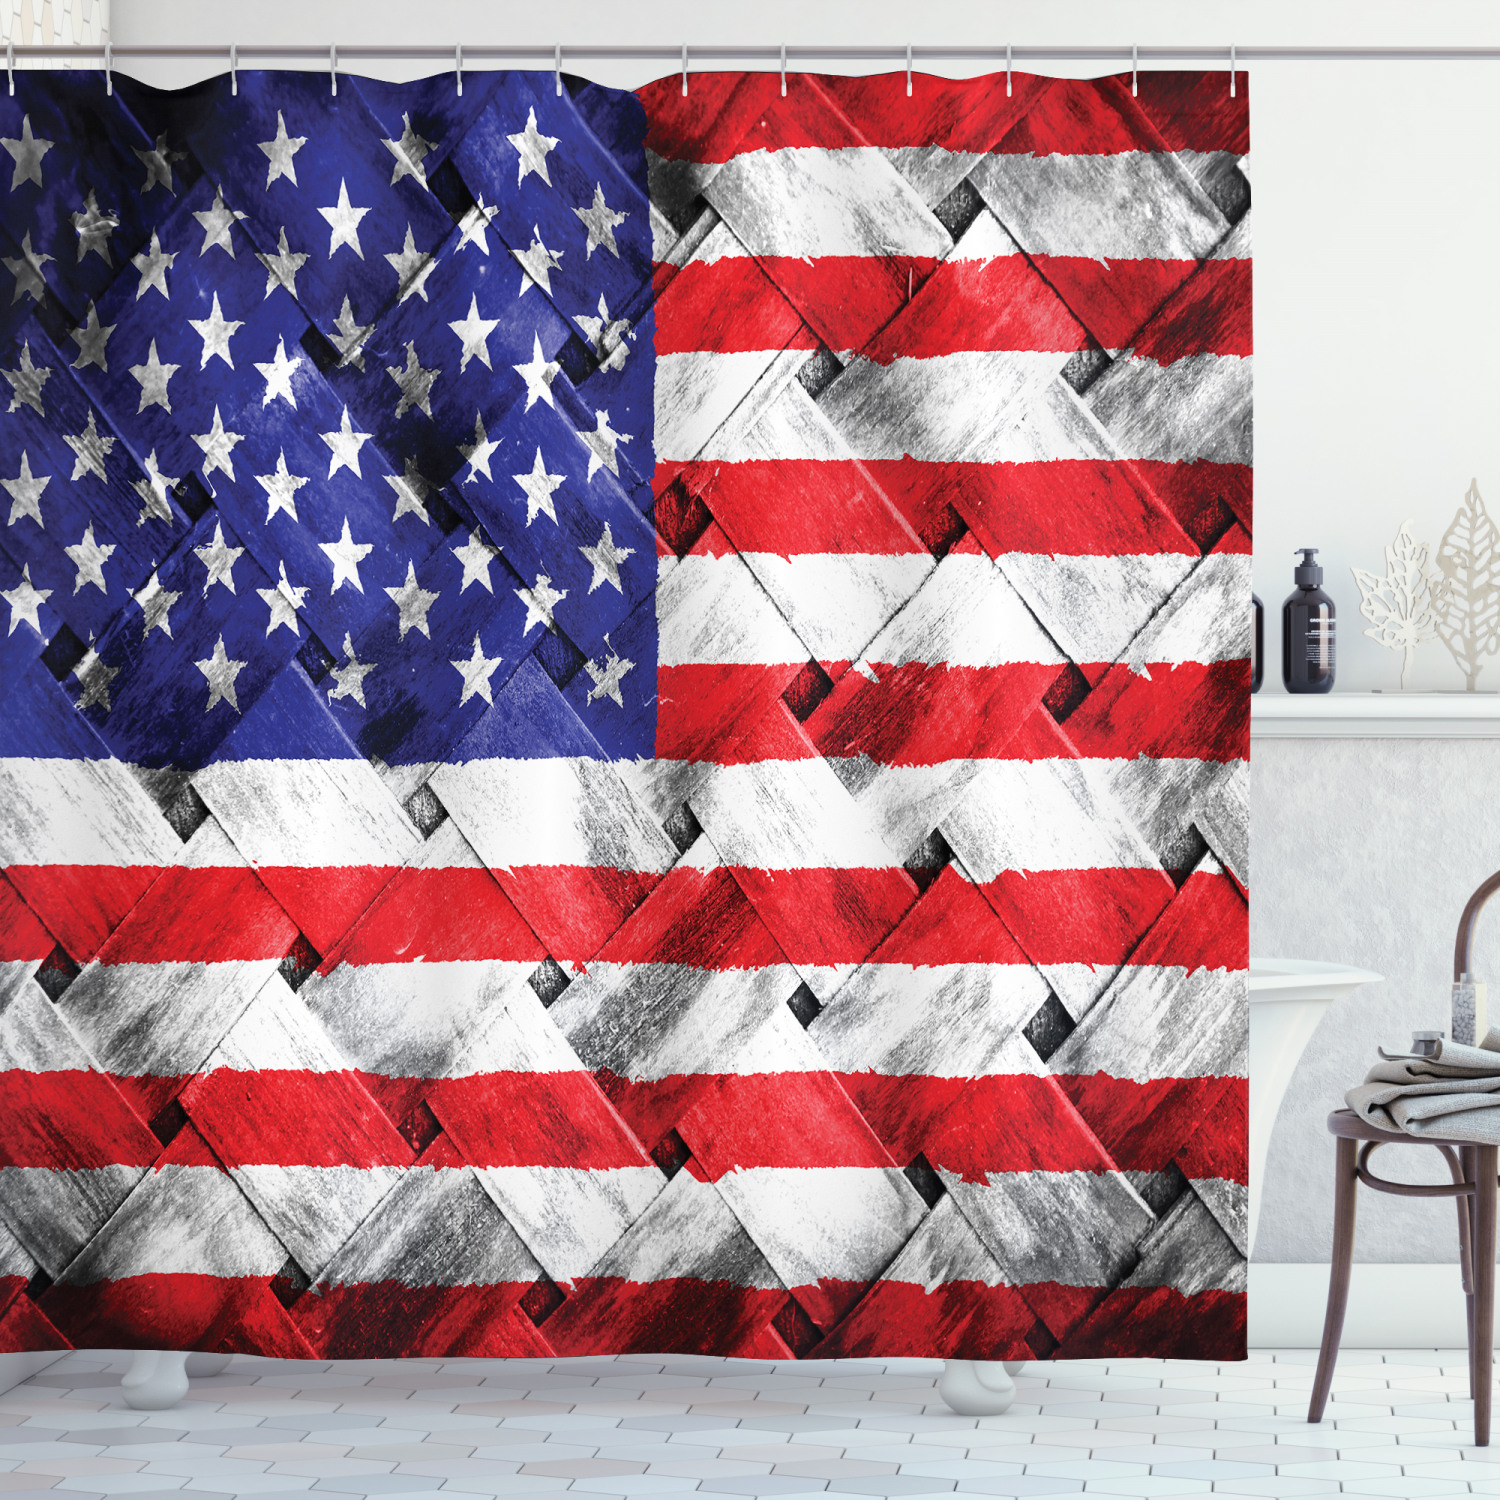 rustic decor american usa flag shower curtain set fourth of july independence day thatch rattan rippled weave bamboo graphic art bathroom